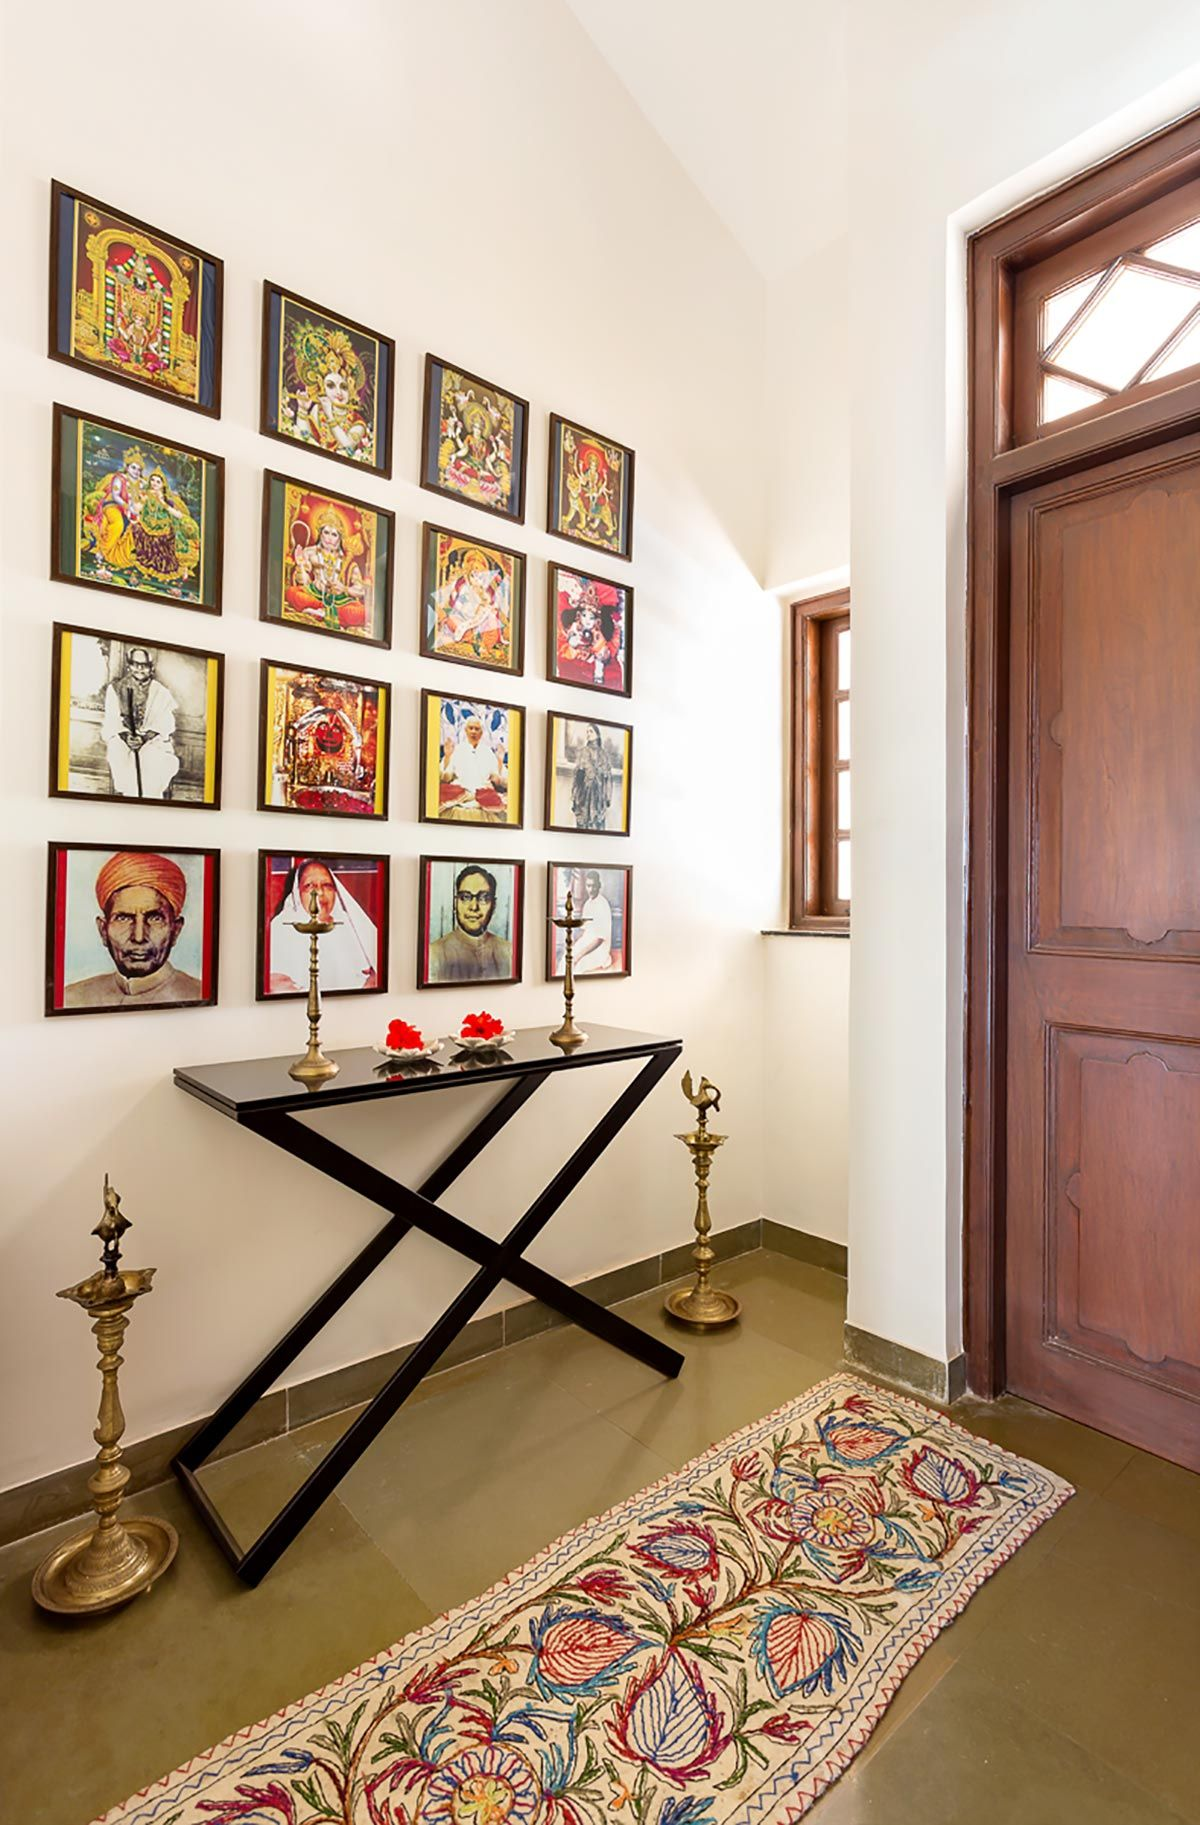 Puja Room Design: Pooja Room Ideas By Manjula Juluri